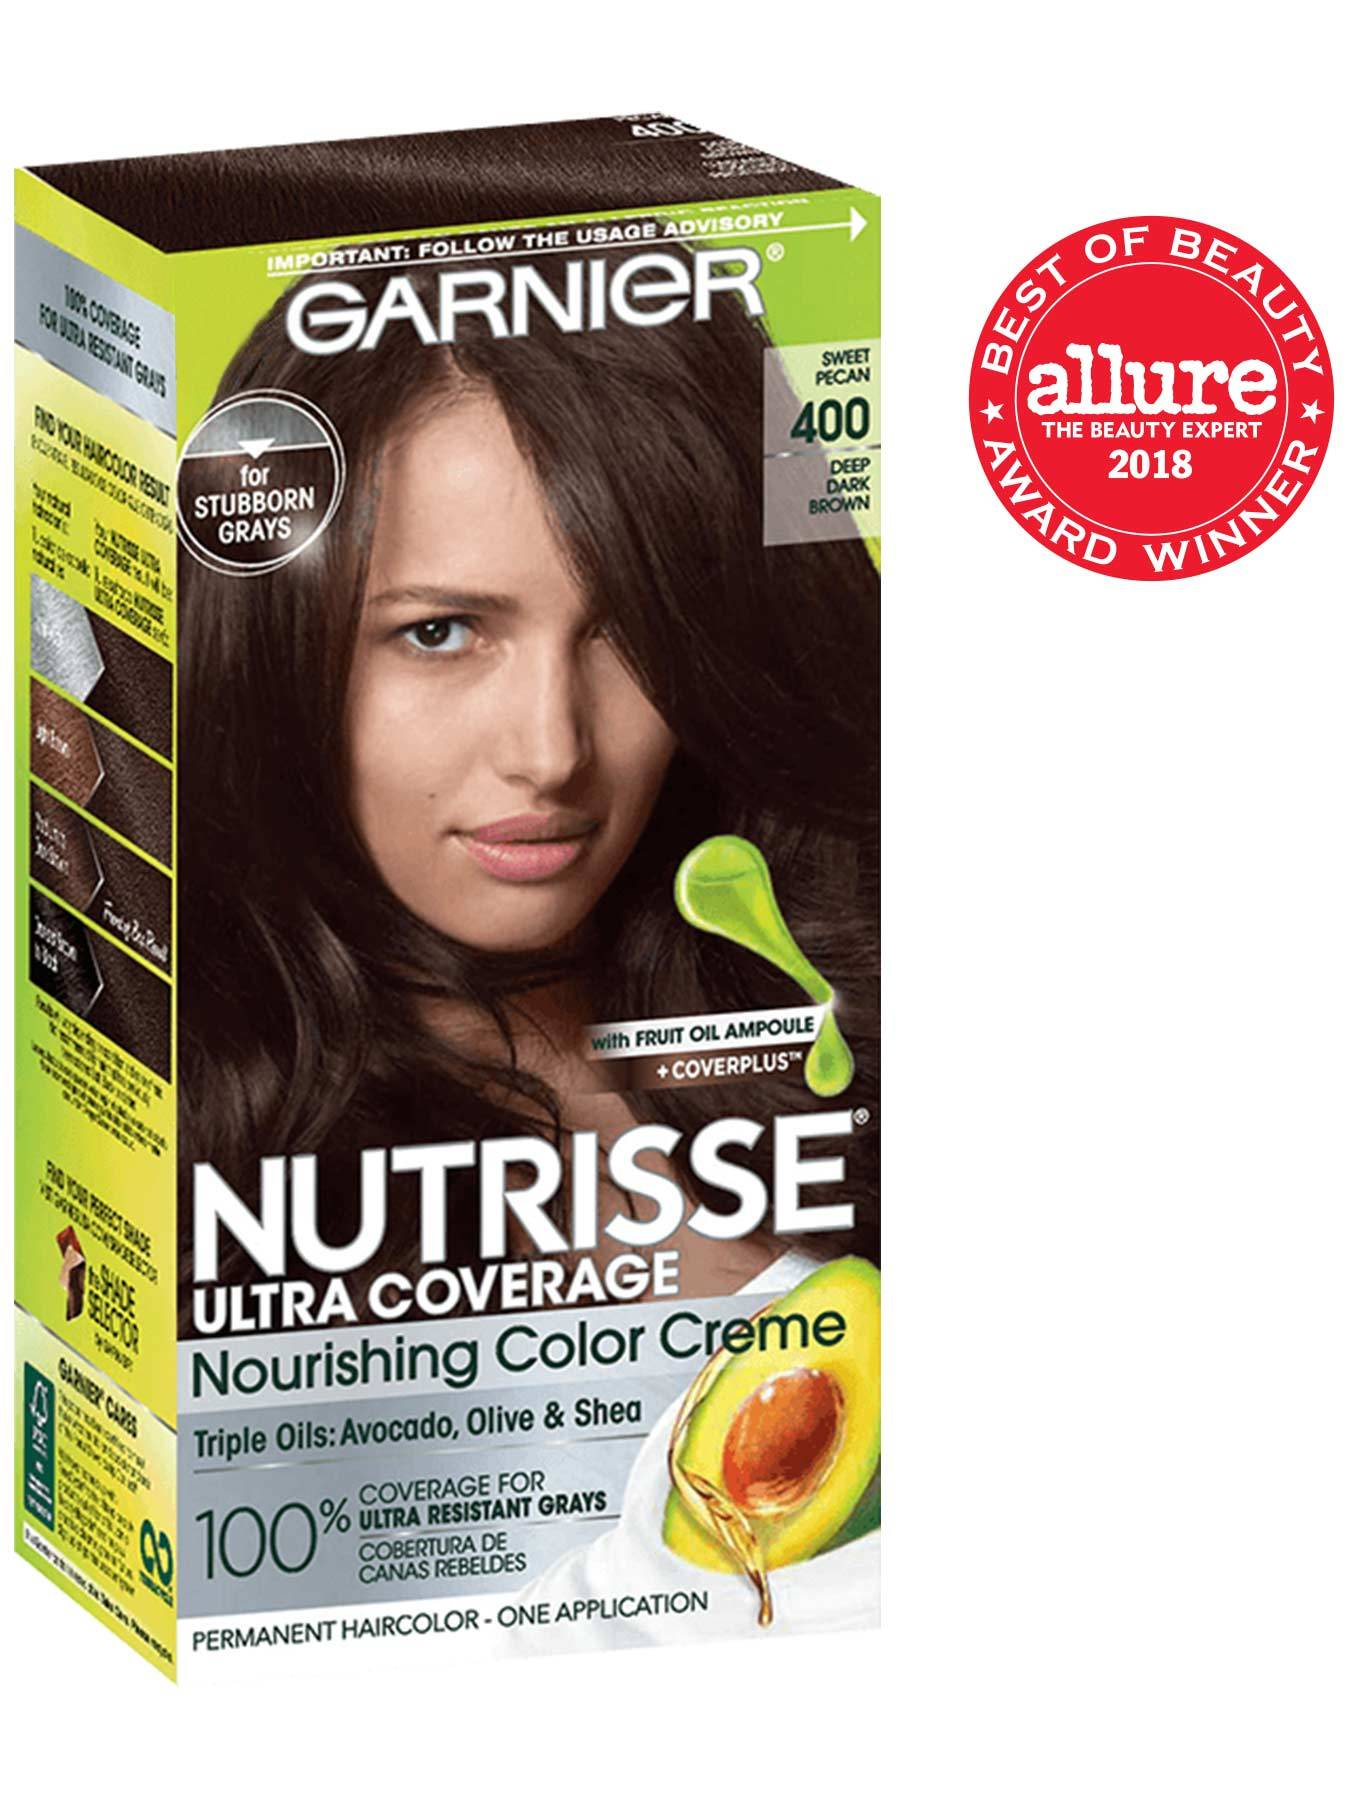 Nutrisse Ultra Coverage Neutral Dark Brown Hair Color - Garnier